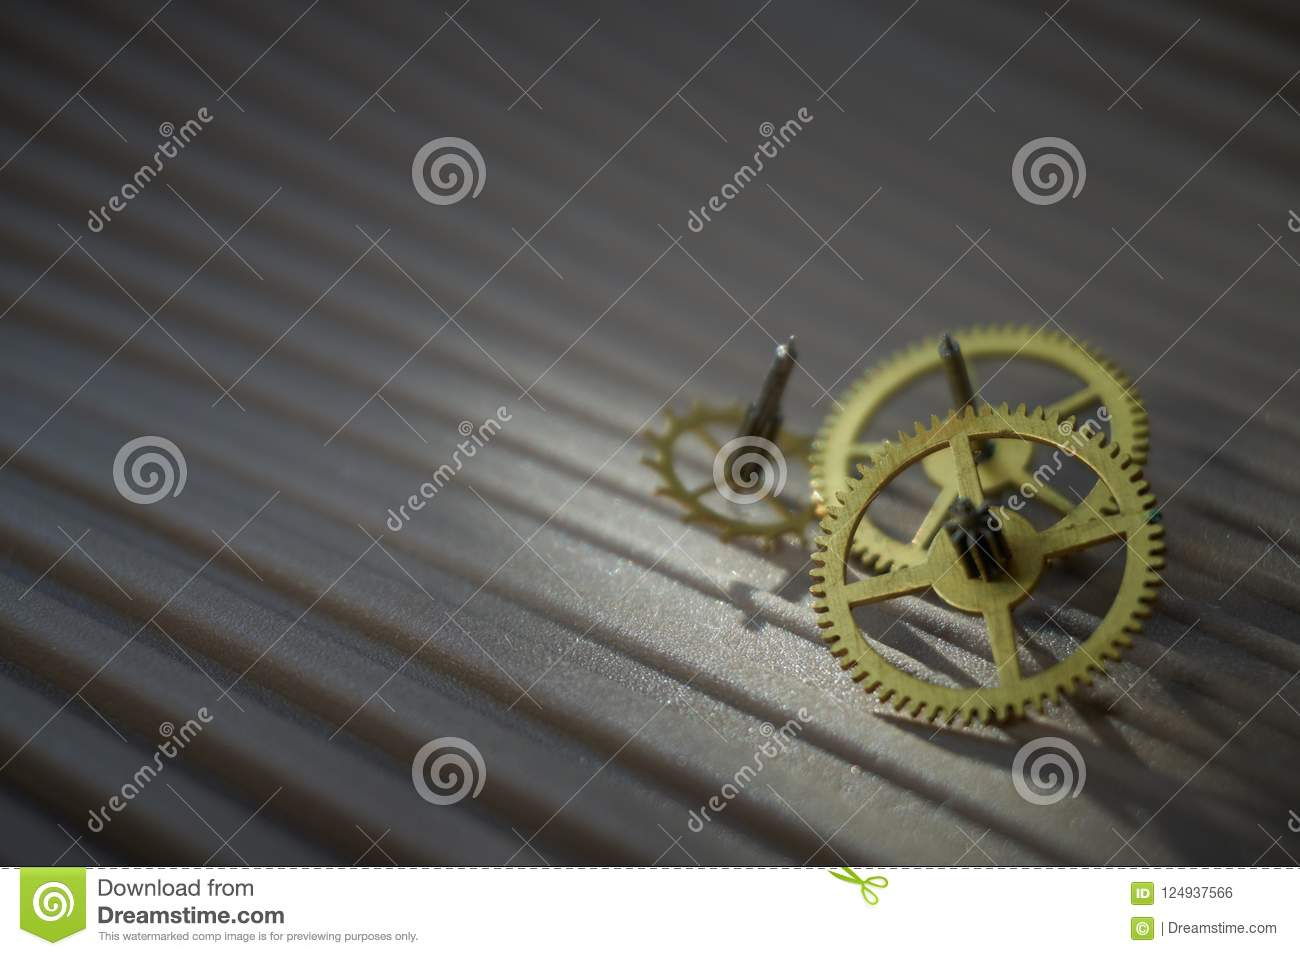 Three different toothed brass metal cog wheels